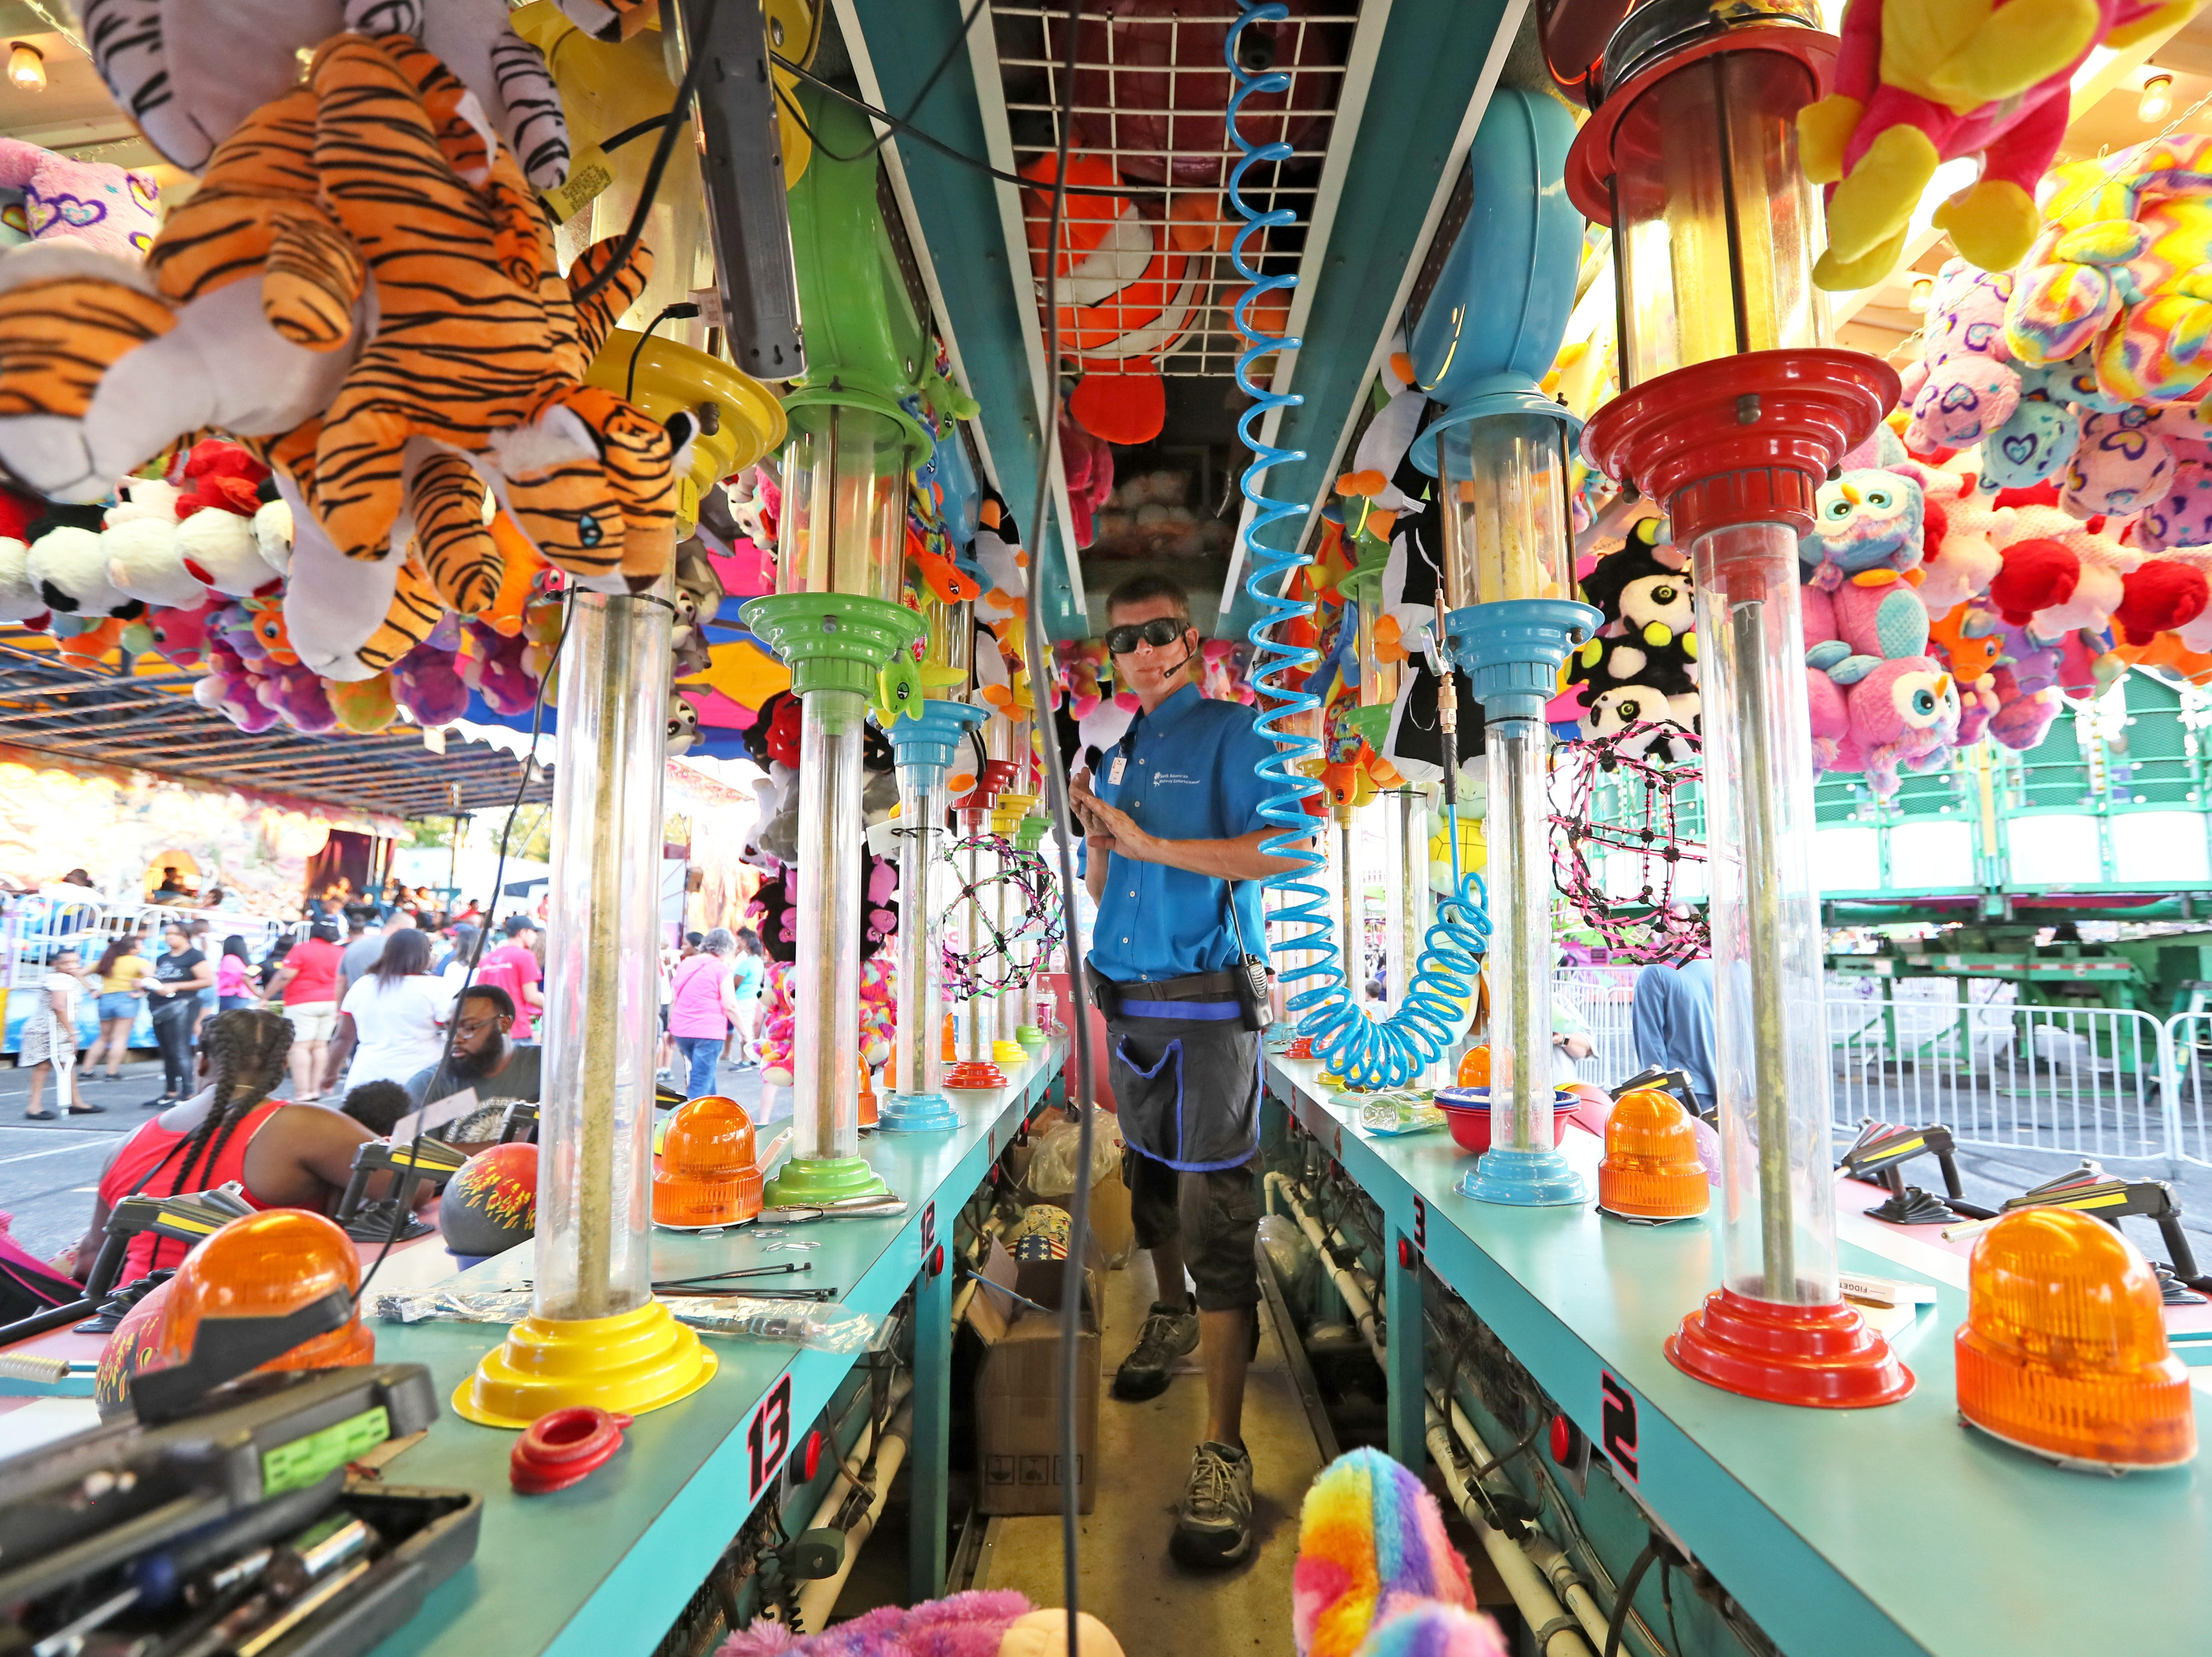 Opening day of the Mid-South Fair at the Landers Center in DeSoto County, Mississippi on Thursday, Sept. 20, 2018.